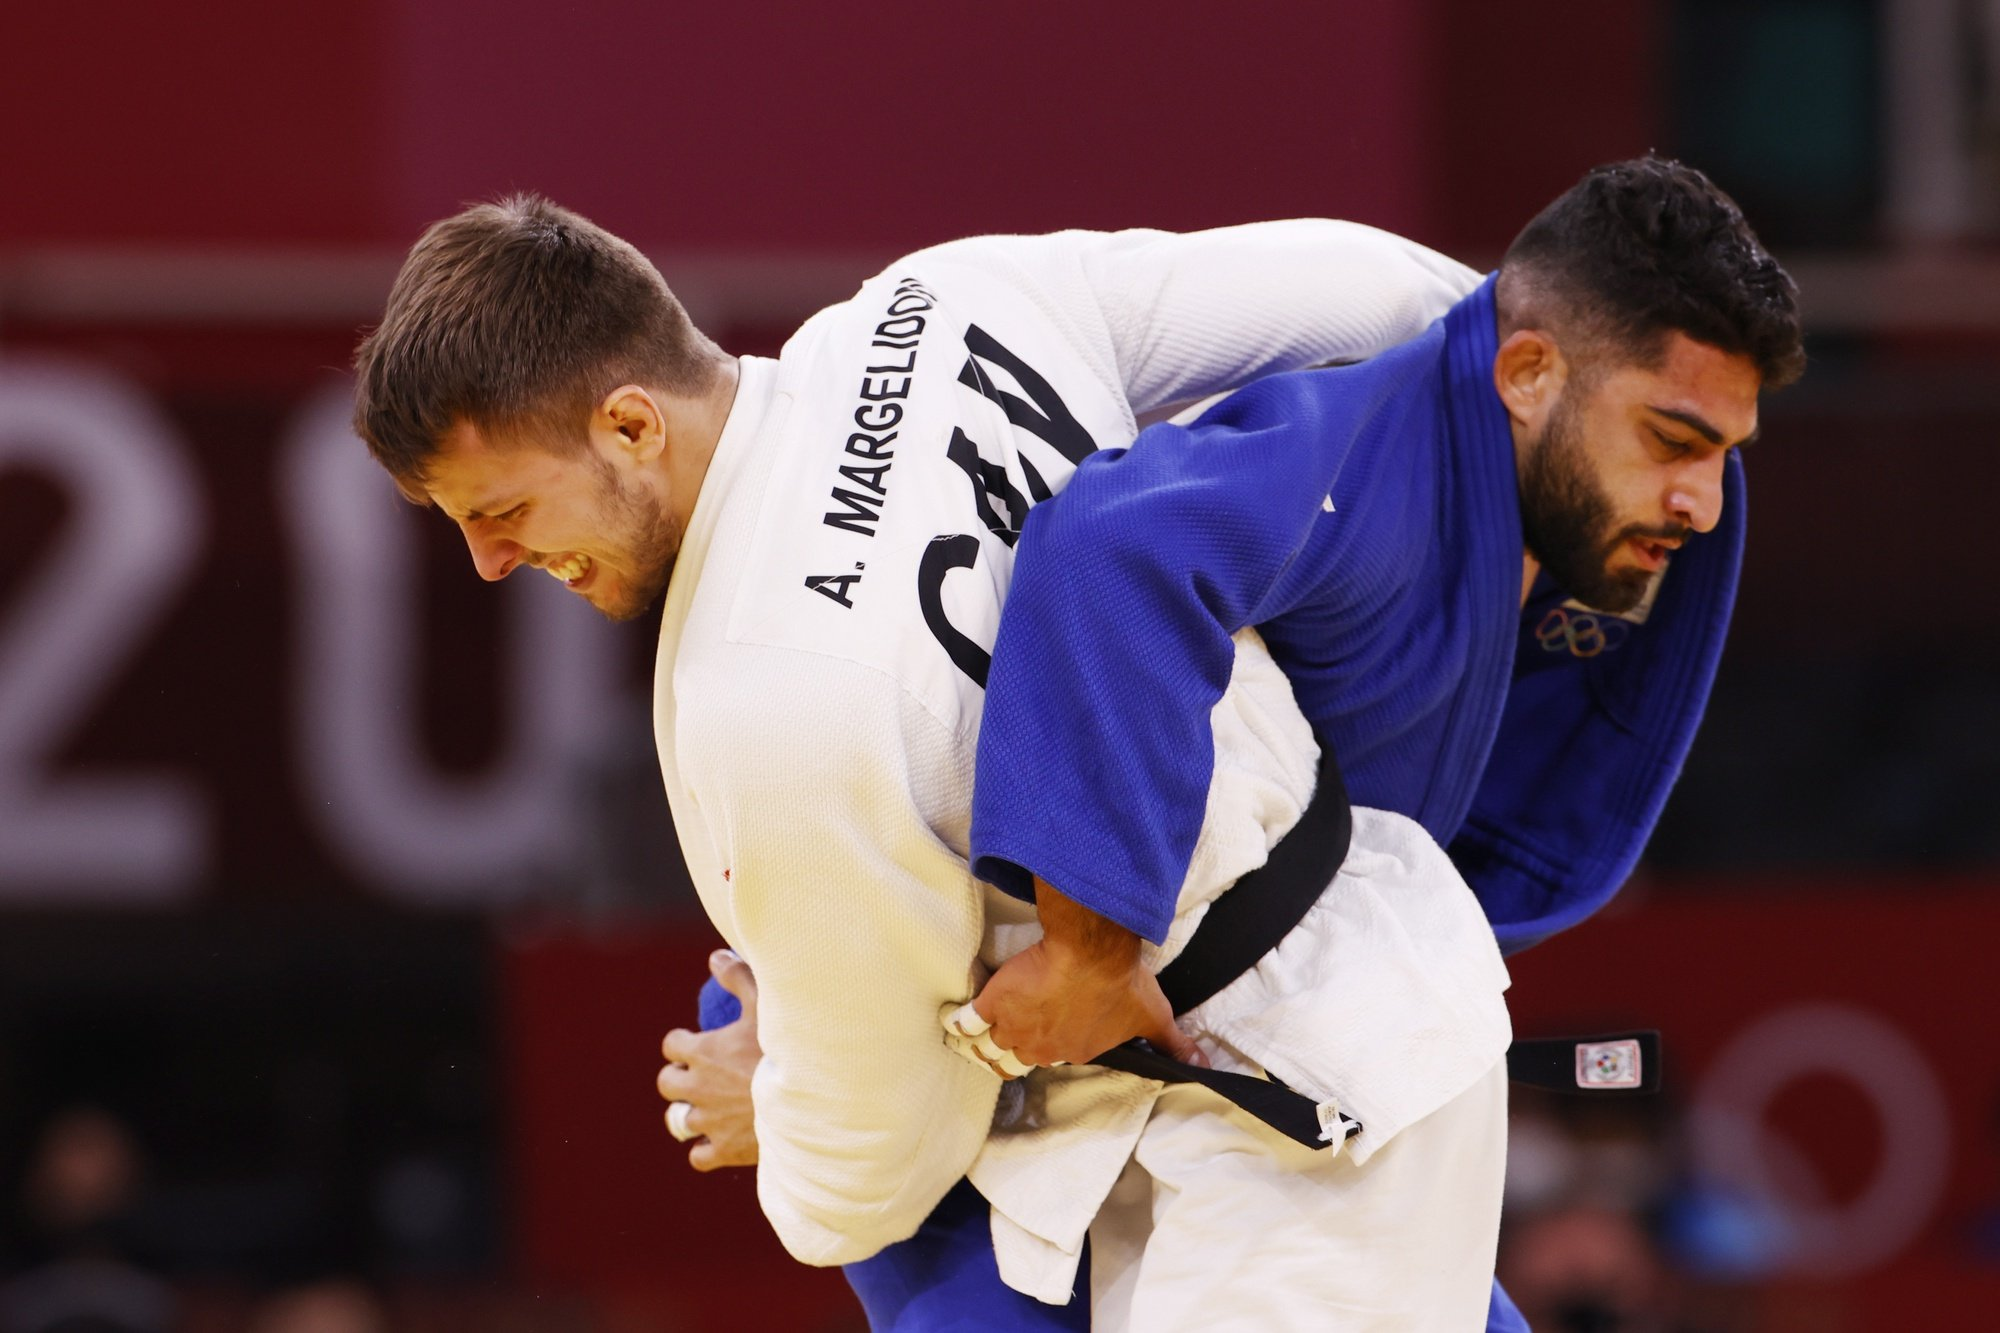 epa09366794 Arthur Margelidon (white) of Canada in action against Tohar Butbul (blue) of Isreal during their Repechage bout in the Men's Judo -73kg at the Tokyo 2020 Olympic Games at the Nippon Budokan arena in Tokyo, Japan, 26 July 2021.  EPA/RUNGROJ YONGRIT